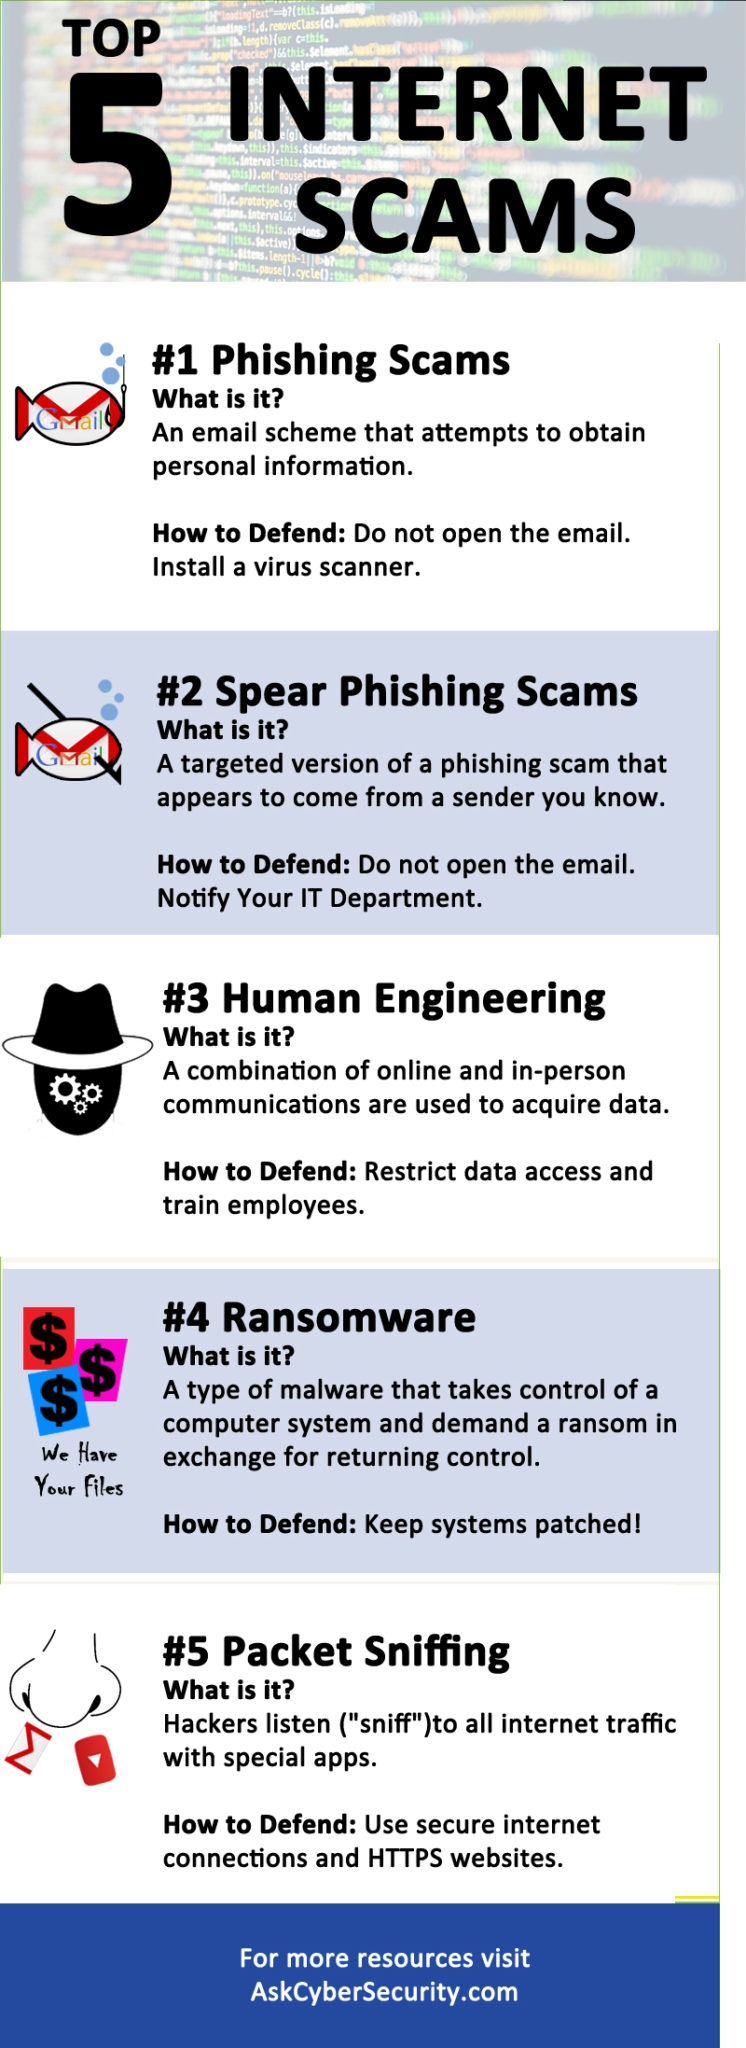 Five Top Internet Scams